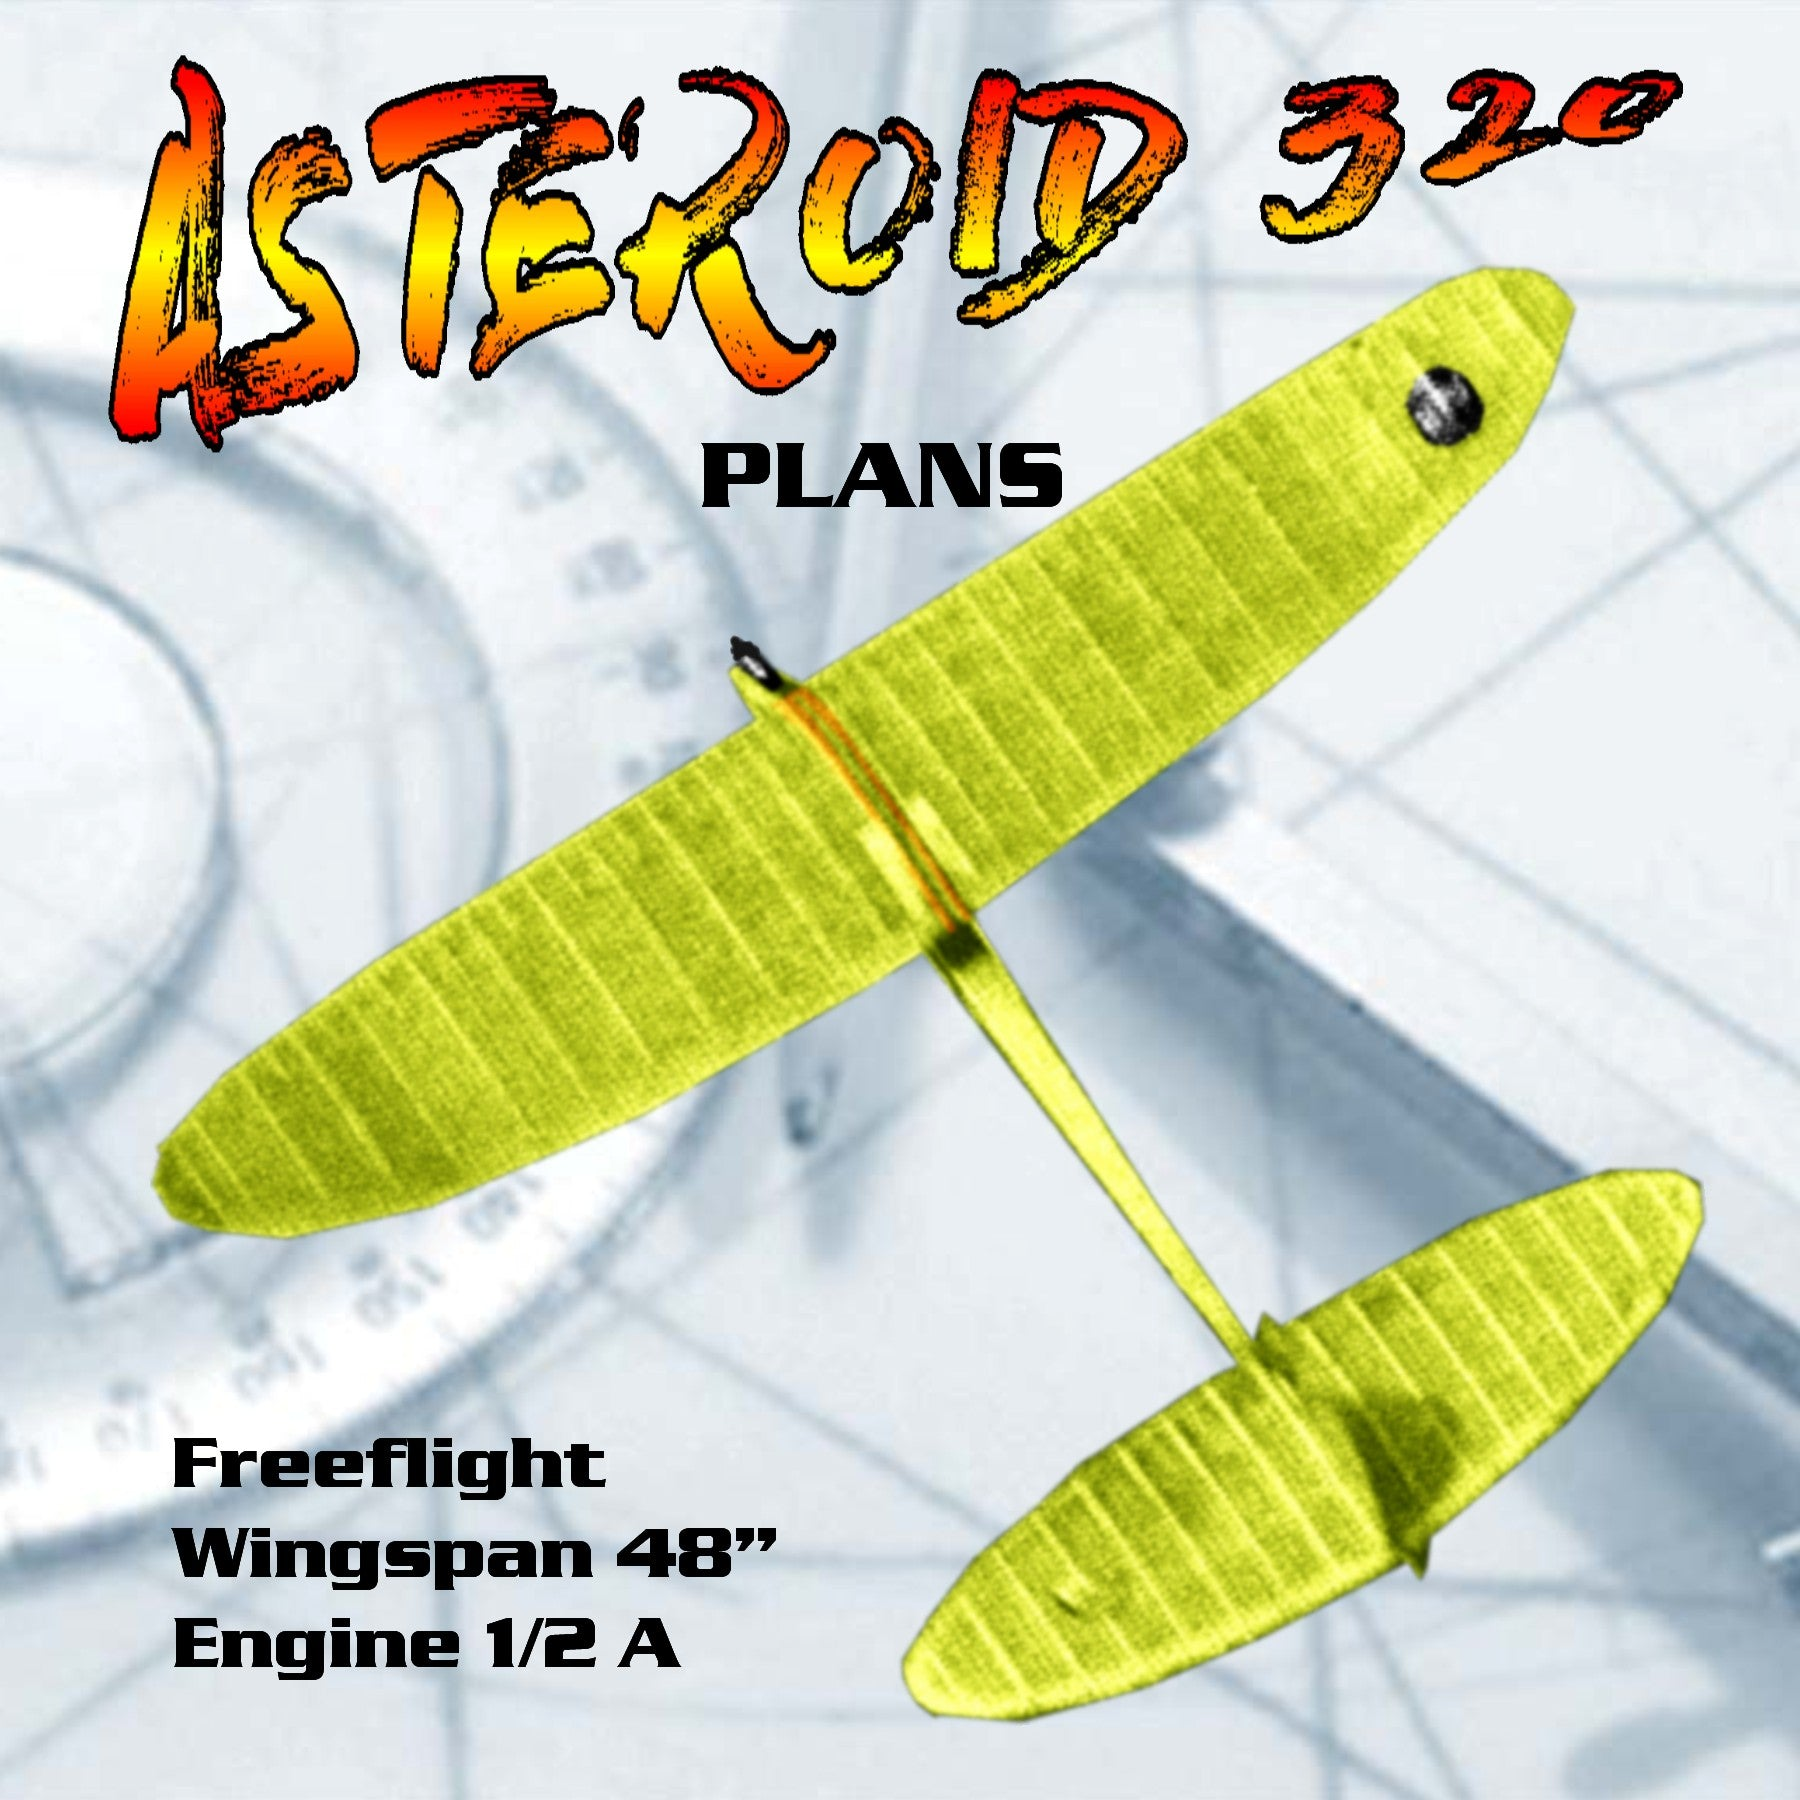 "Vintage 1959 Plans  ½ A Wingspan 48"" Freeflight ASTEROID 320 includes building notes"